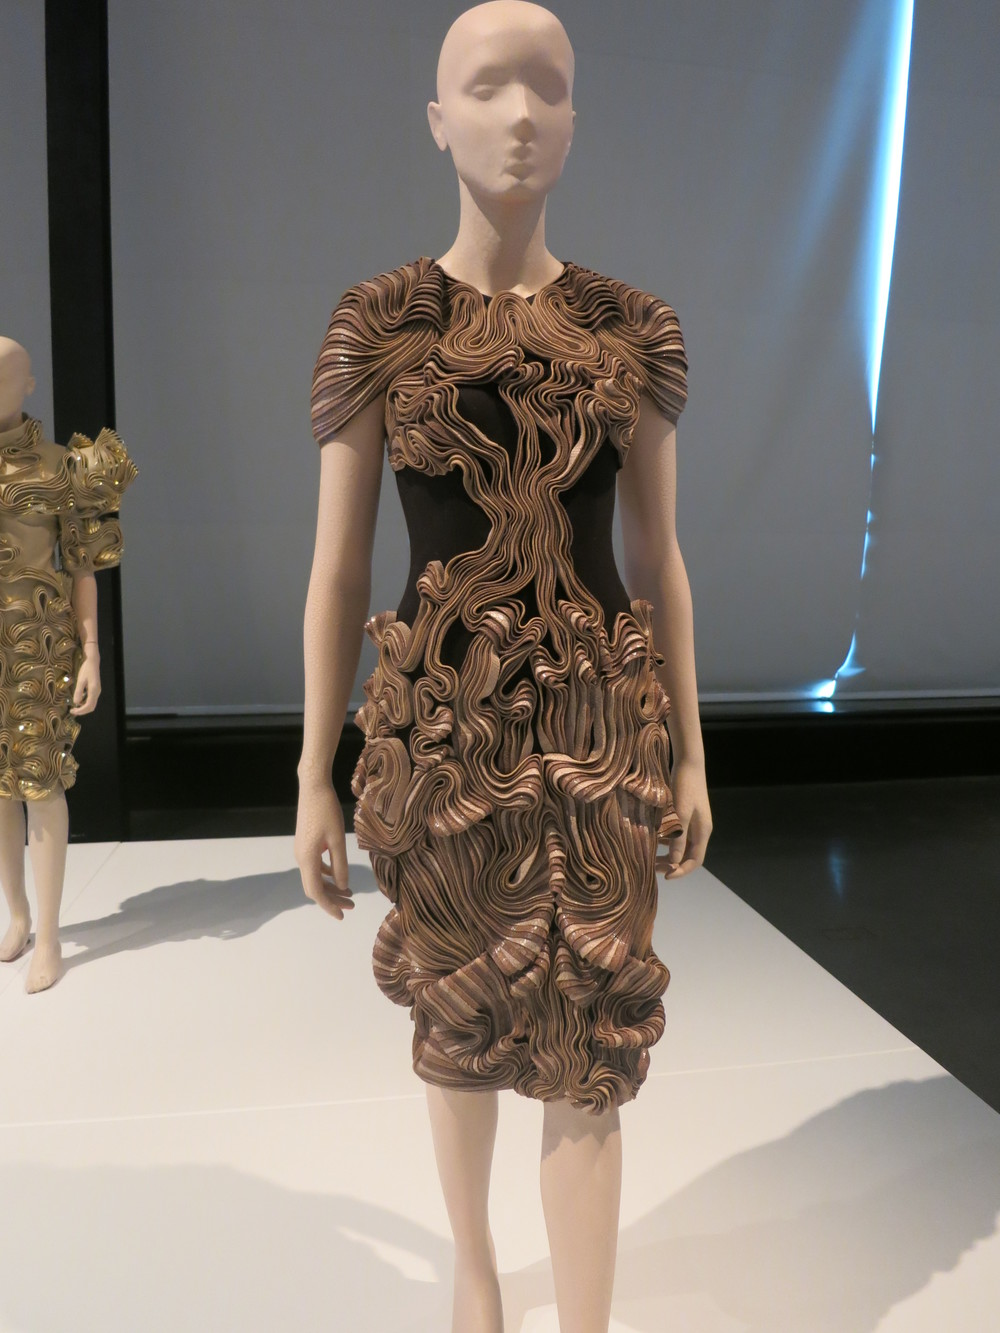 Iris van Herpen exhibition at Calais Lace Museum 2013 - 'RADIATION INVASION' 2009